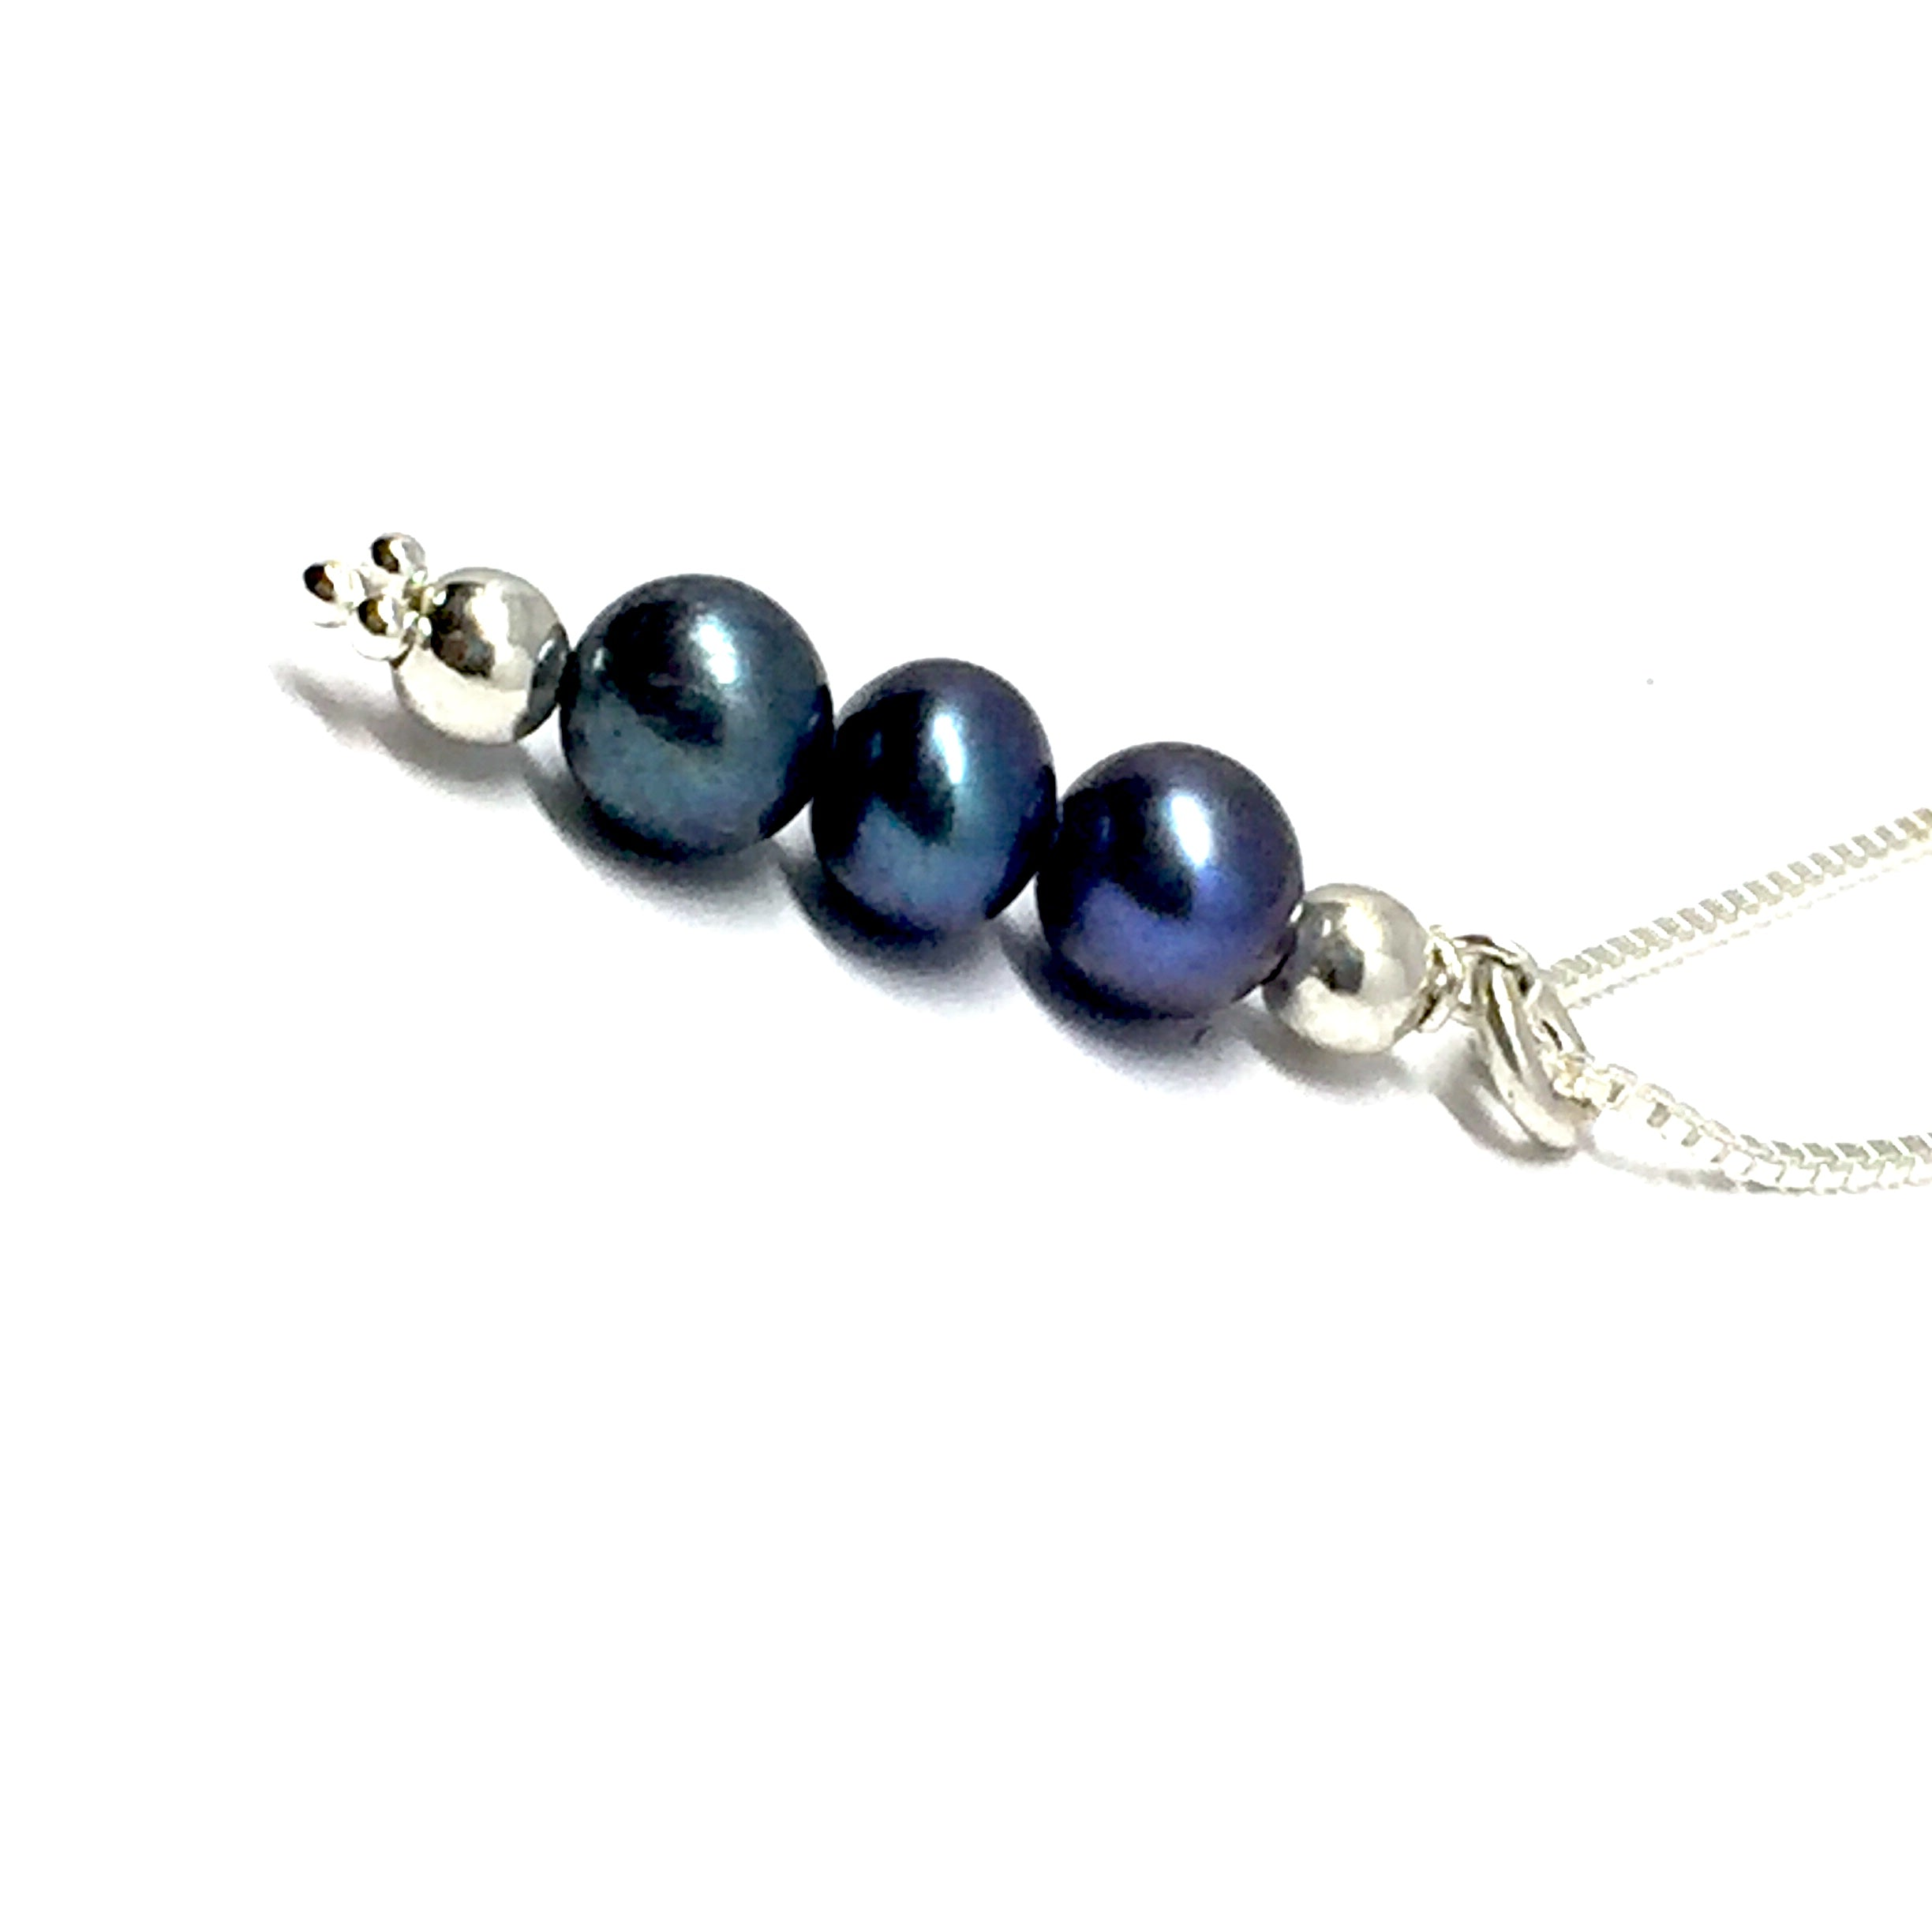 3 Peas in a Pod Necklace (Peacock Pearl)